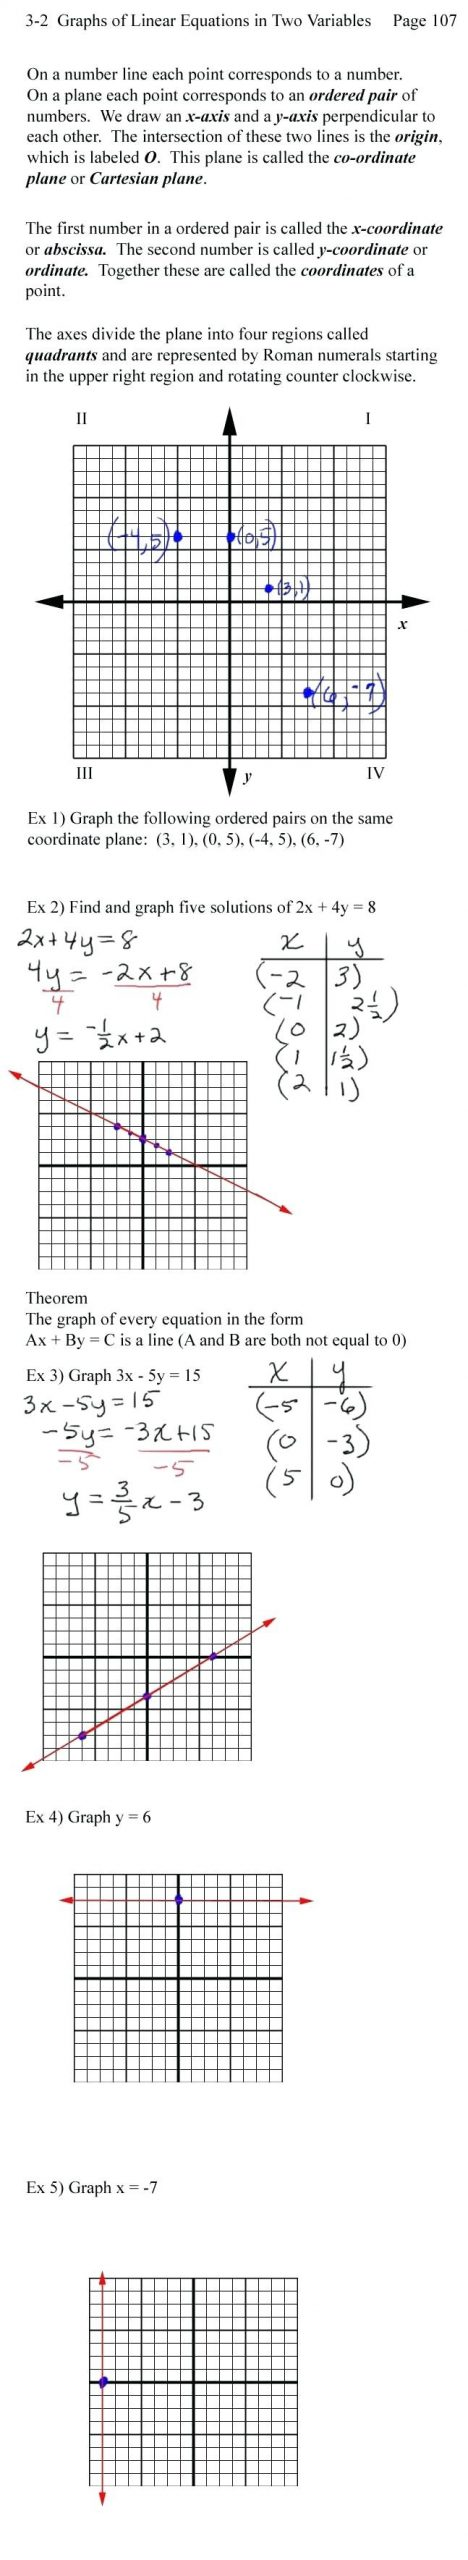 Graphing Linear Inequalities Worksheet Answers Graphing Linear Inequalities Worksheet Promotiontablecovers